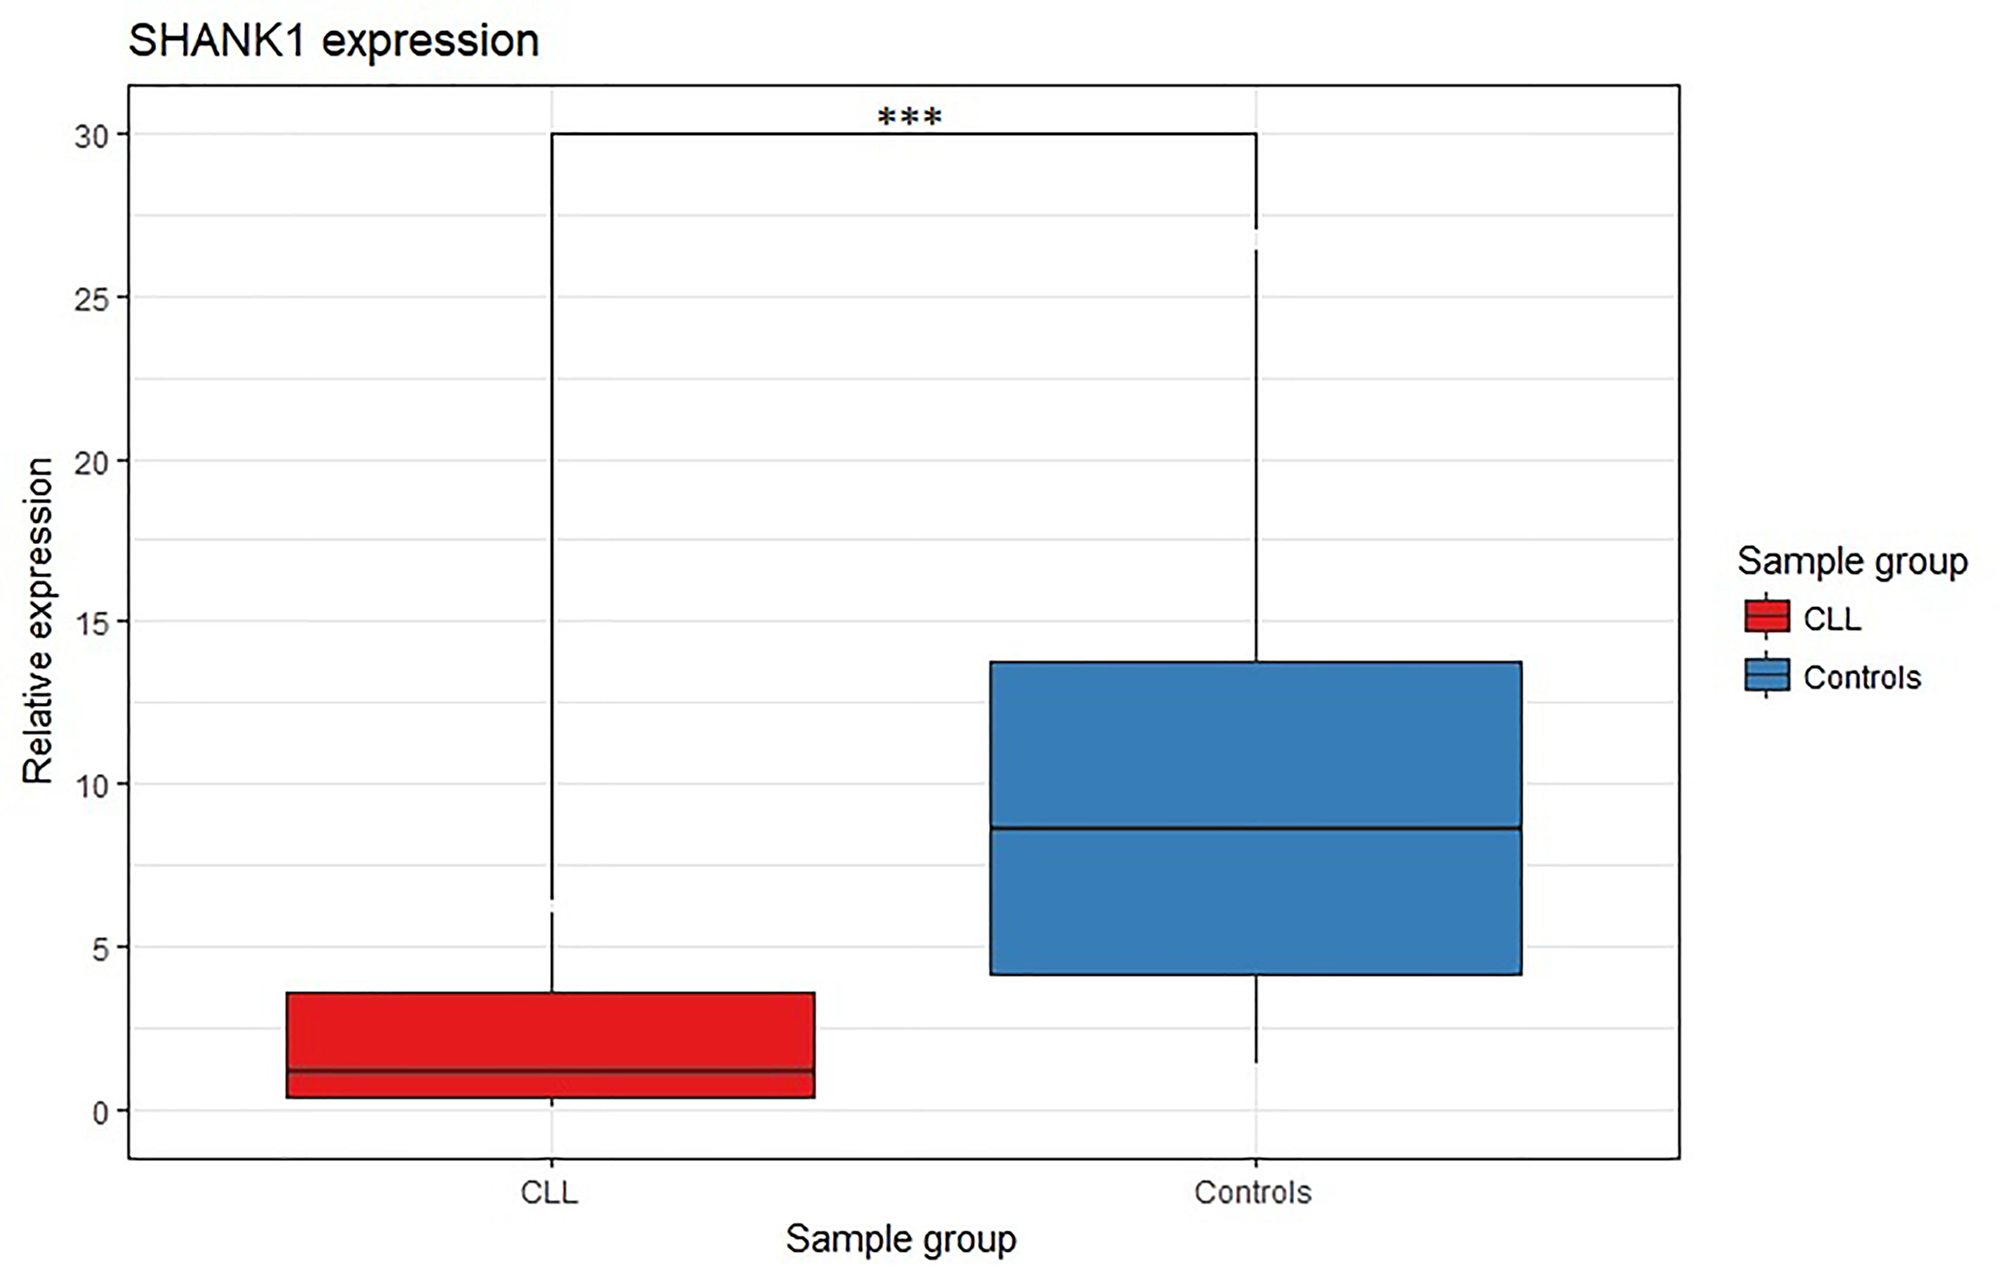 SHANK1 differential gene expression analysis between CLL and control samples.